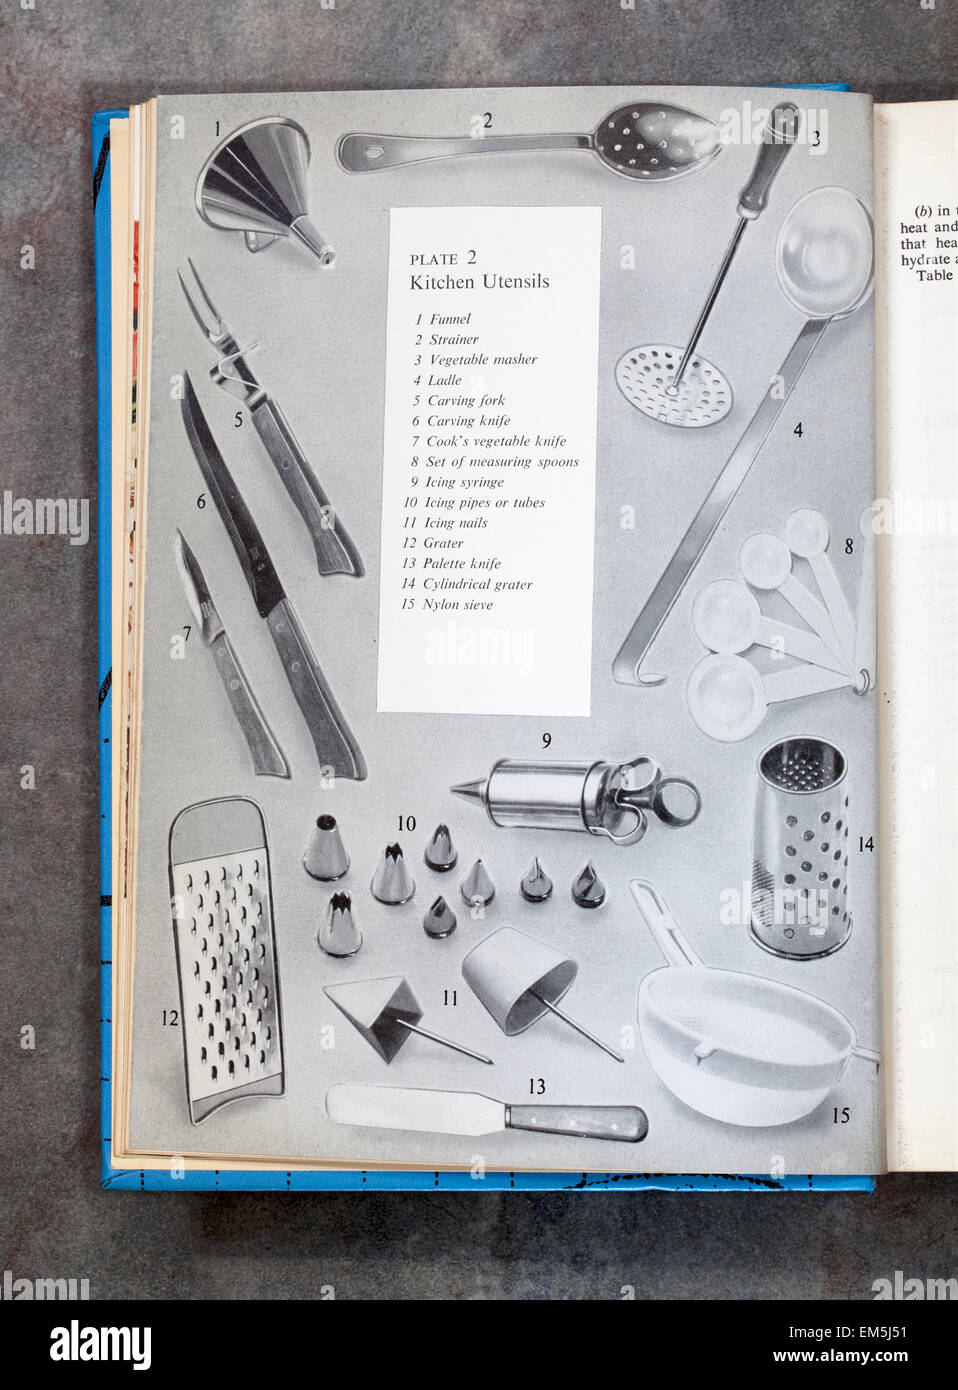 KItchen Utensils Chapter Page from Mrs Beetons Everyday Cookery Book - Stock Image